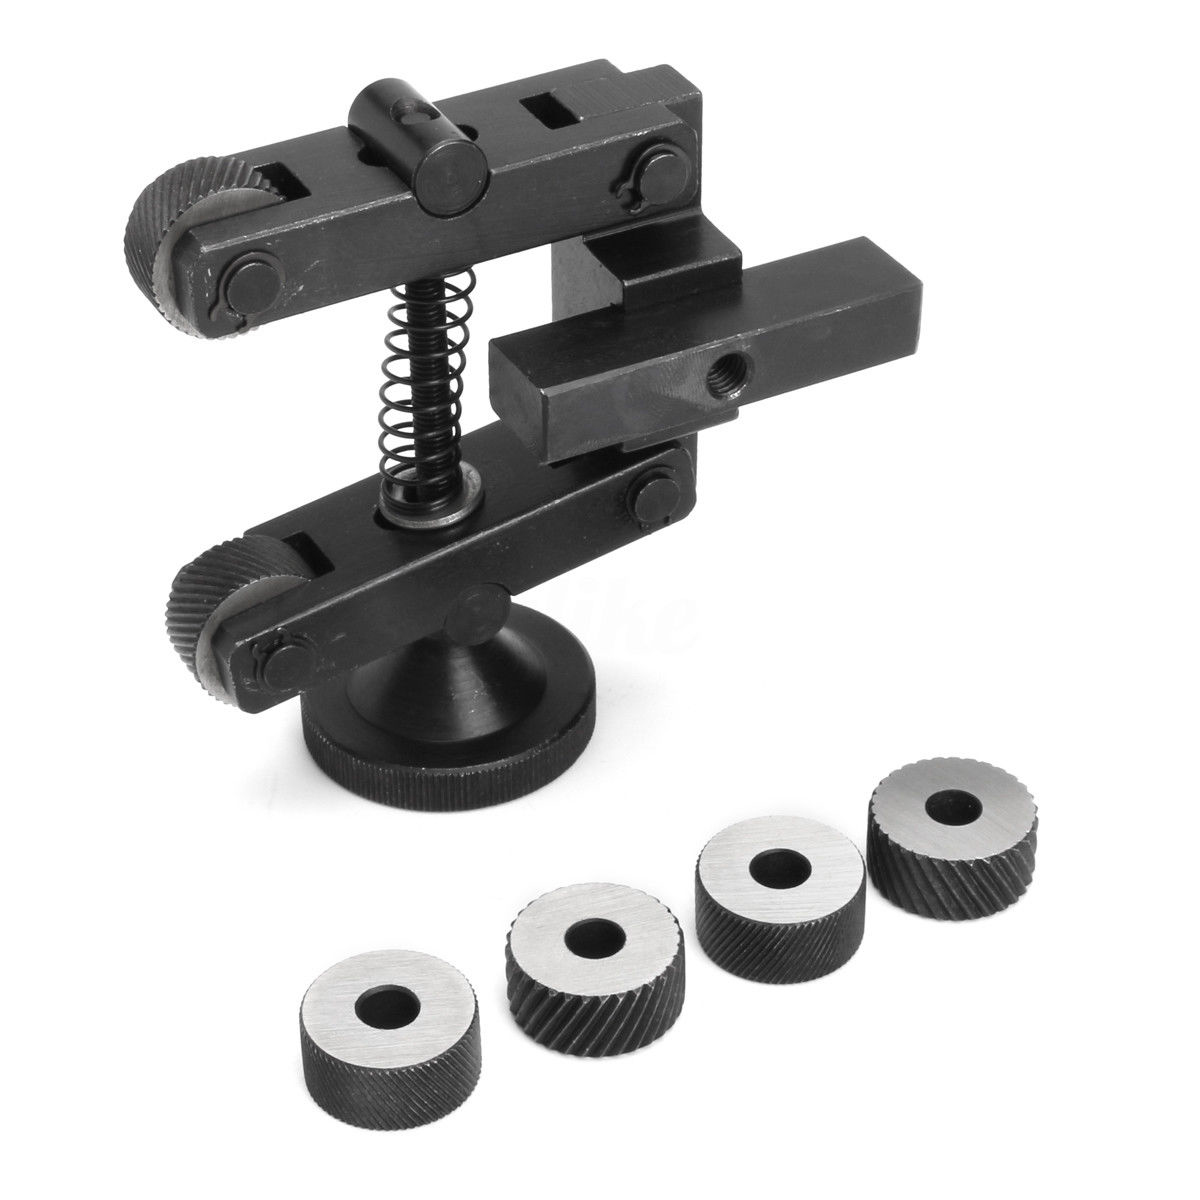 Mayitr Carbon Steel Knurling Tool Holder Linear Knurl Tools Adjustable Shank + 6pcs Wheel 20mm For Mini Lathe Spindle Bearings<br>